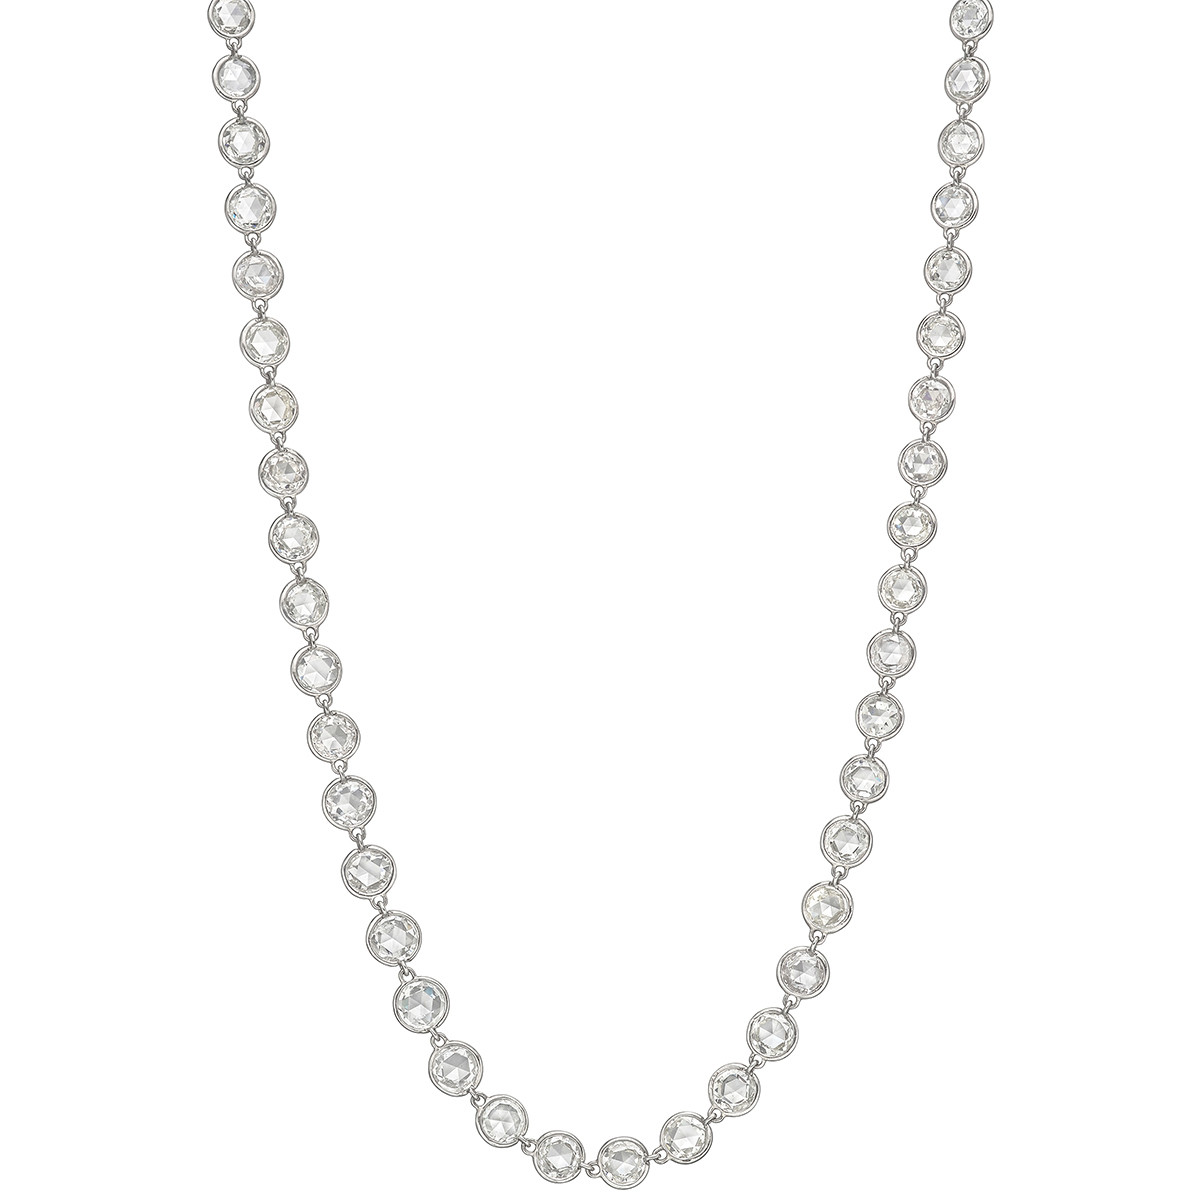 Rose-Cut Diamond Chain Necklace (16.29 ct tw)